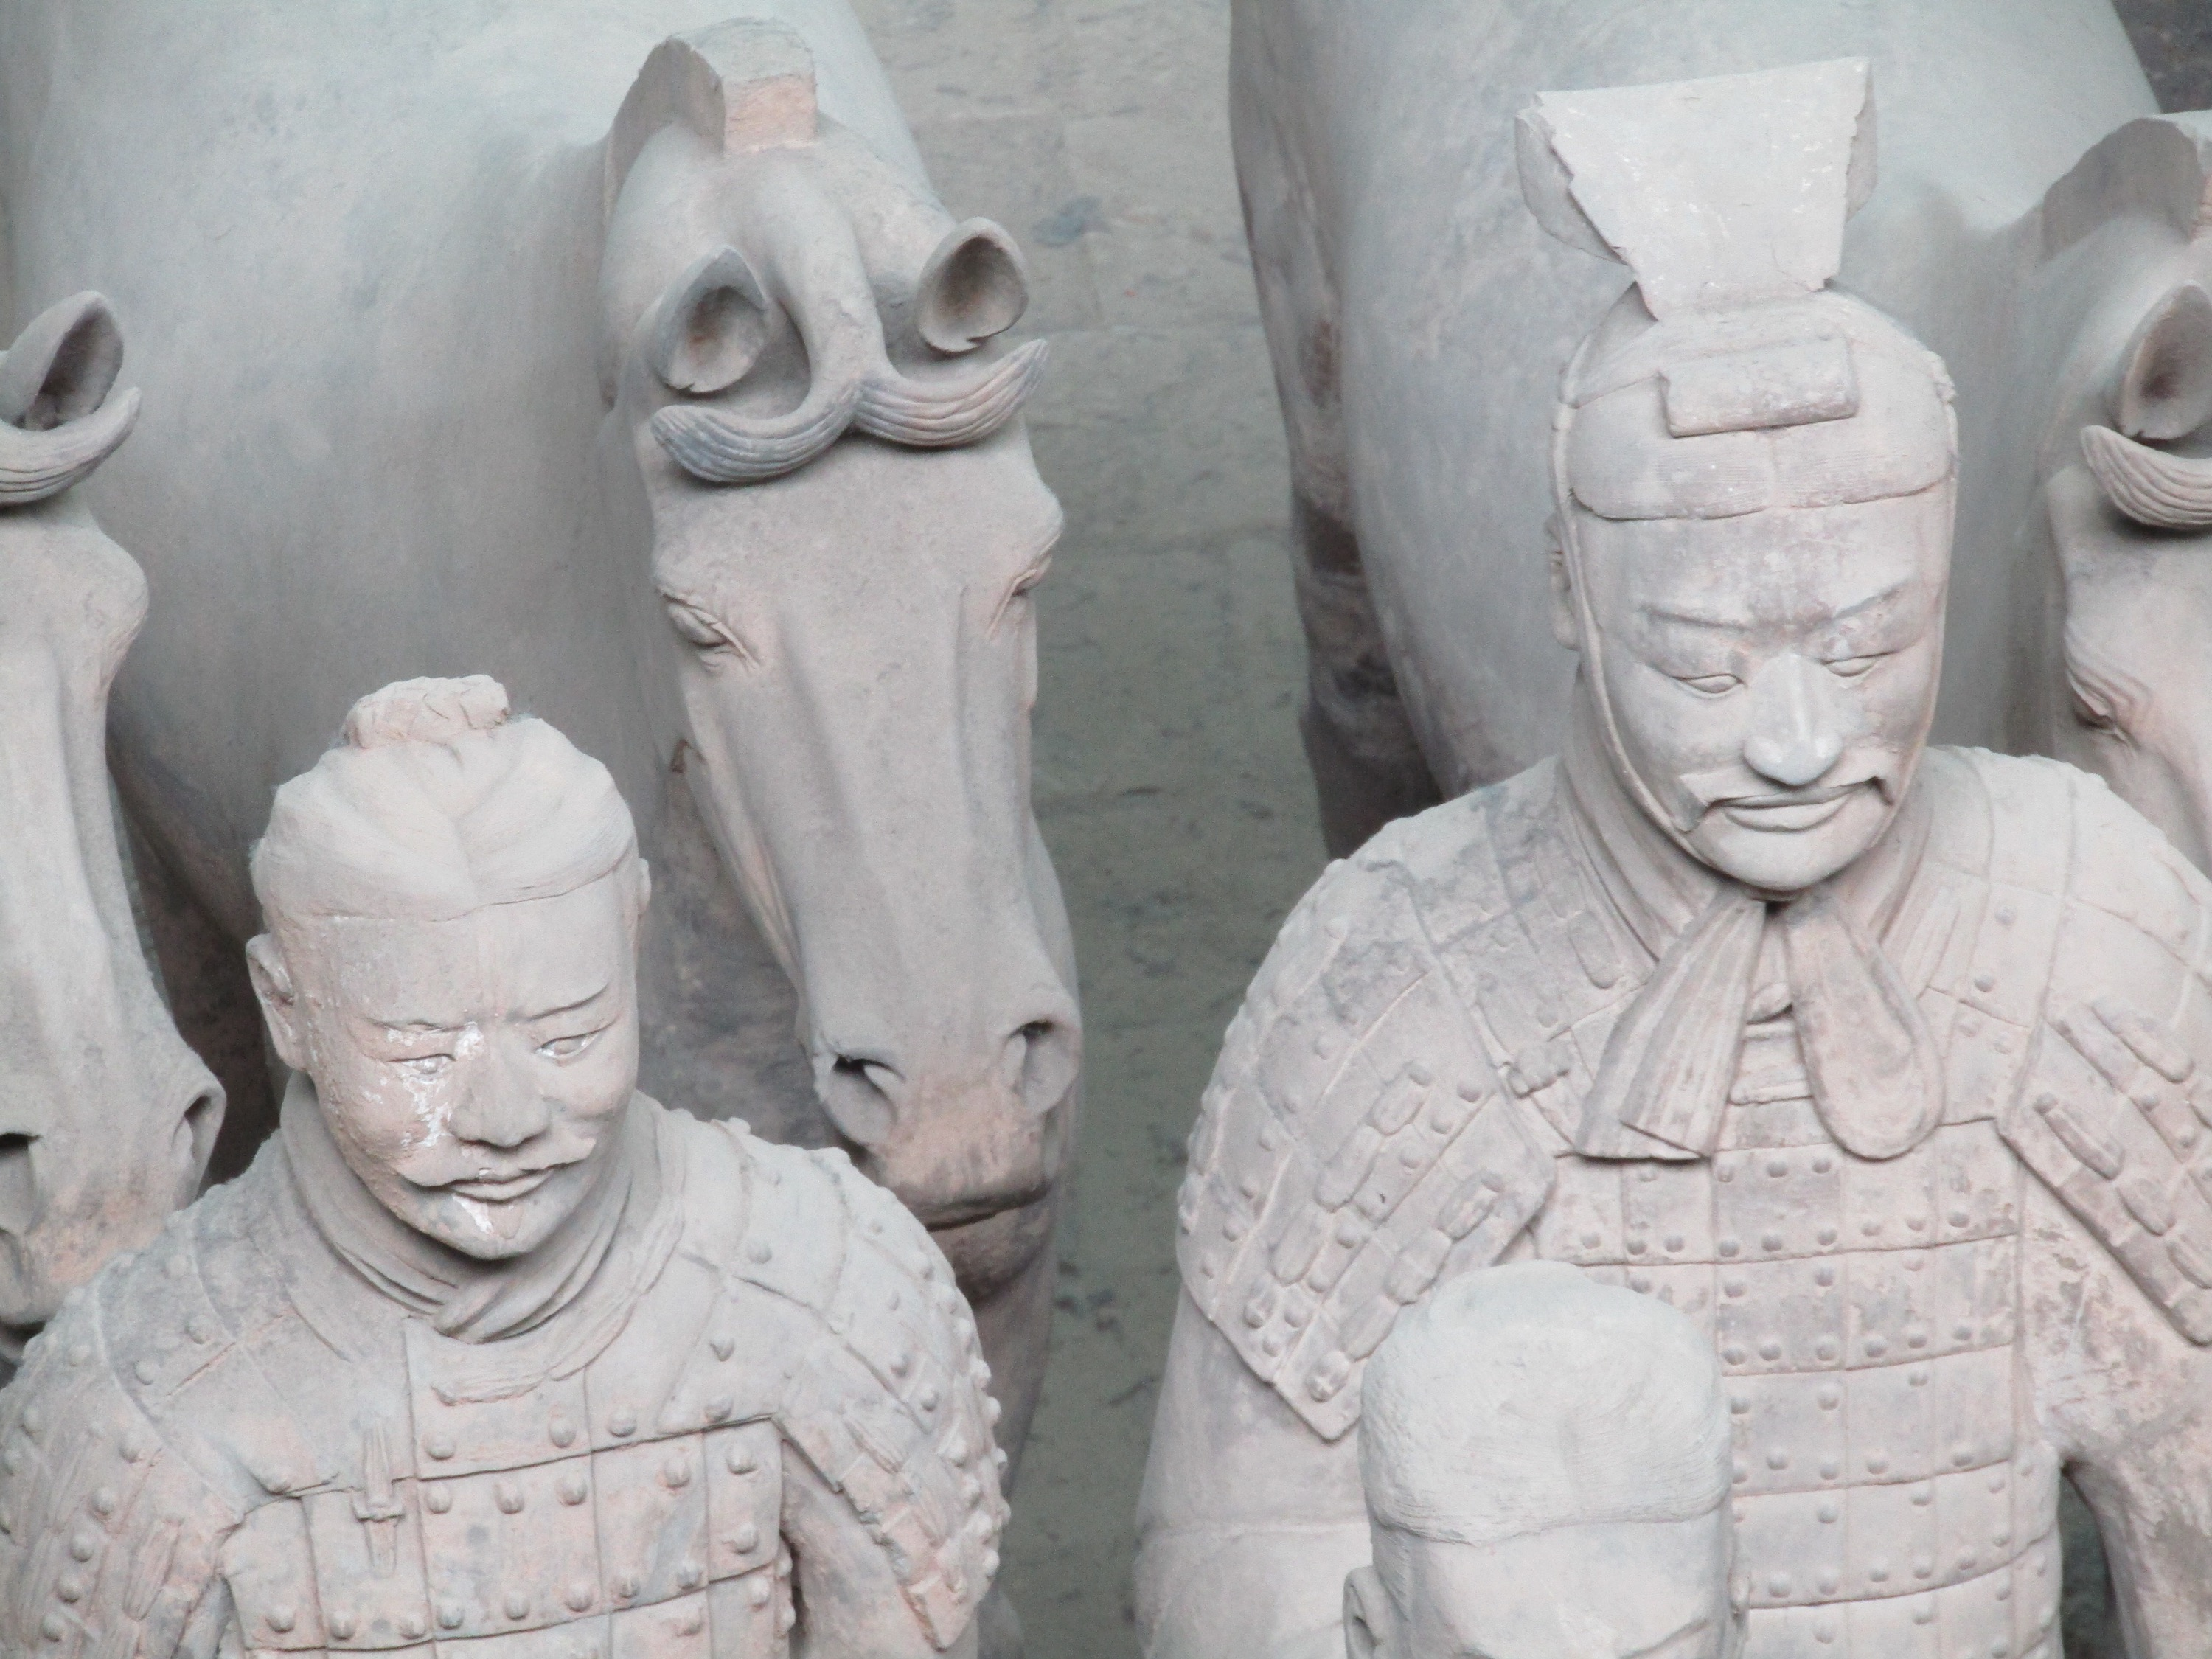 Qin's terracotta army was created in the same manner as a human army, complete with generals, infantry, horse-drawn chariots and social structures. Each warrior was dressed in bronze and leather, and held different weapons. The bronze swords were still sharp enough to cut paper when they were rediscovered thanks to a chrome-plating method that died with the empire and would not be re-invented for another two millennia.